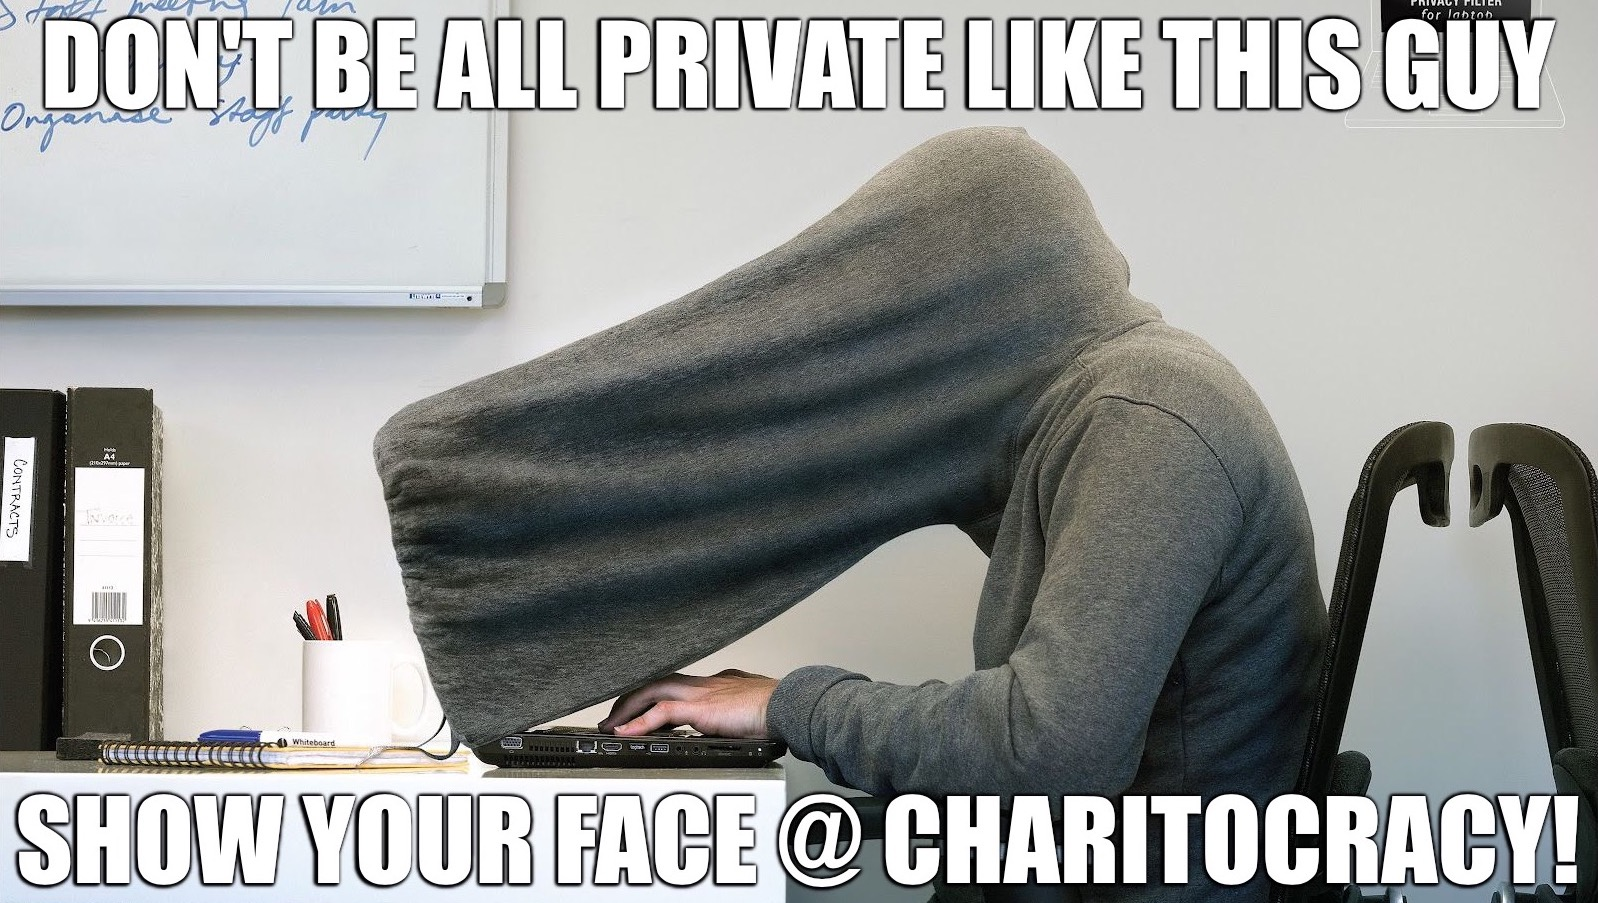 Don't be all private like this guy. Show your face @ Charitocracy!